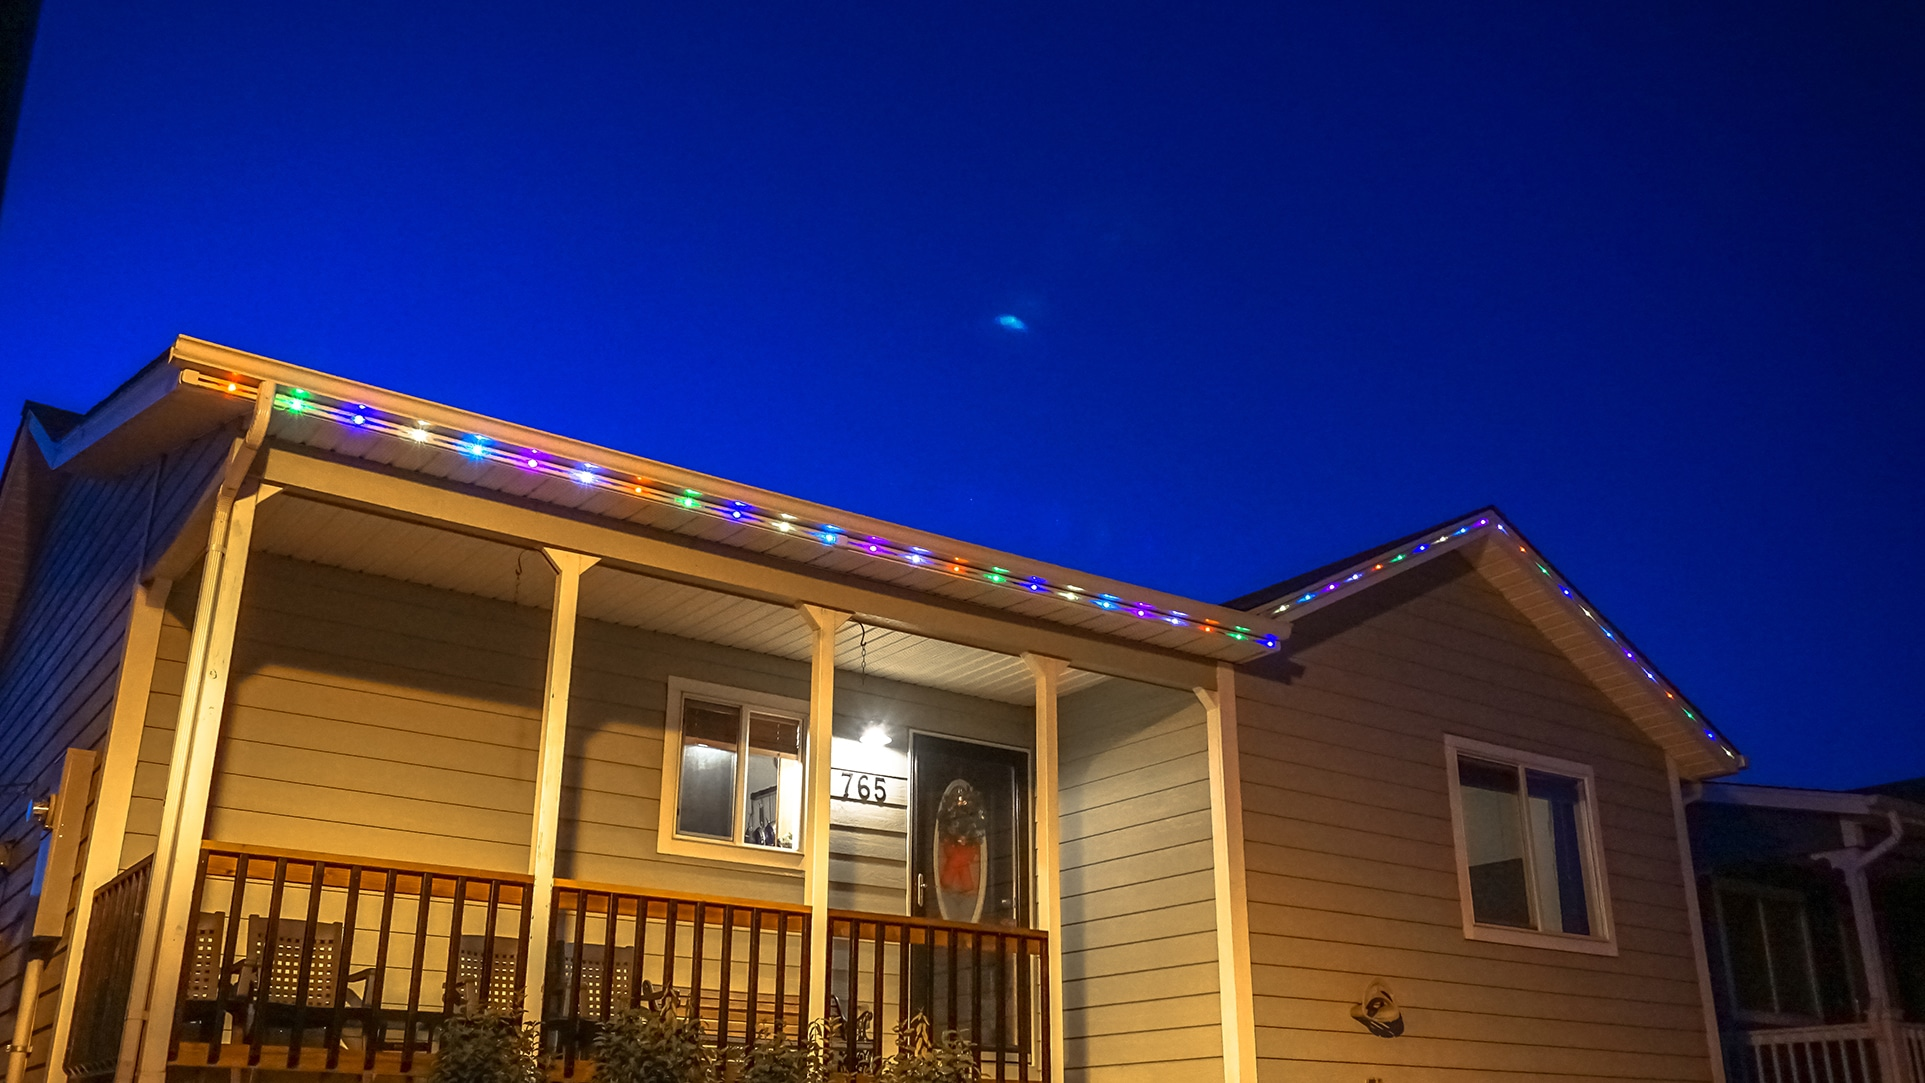 Permanent Christmas Lights On A Charming Single Family Home In Colorado.